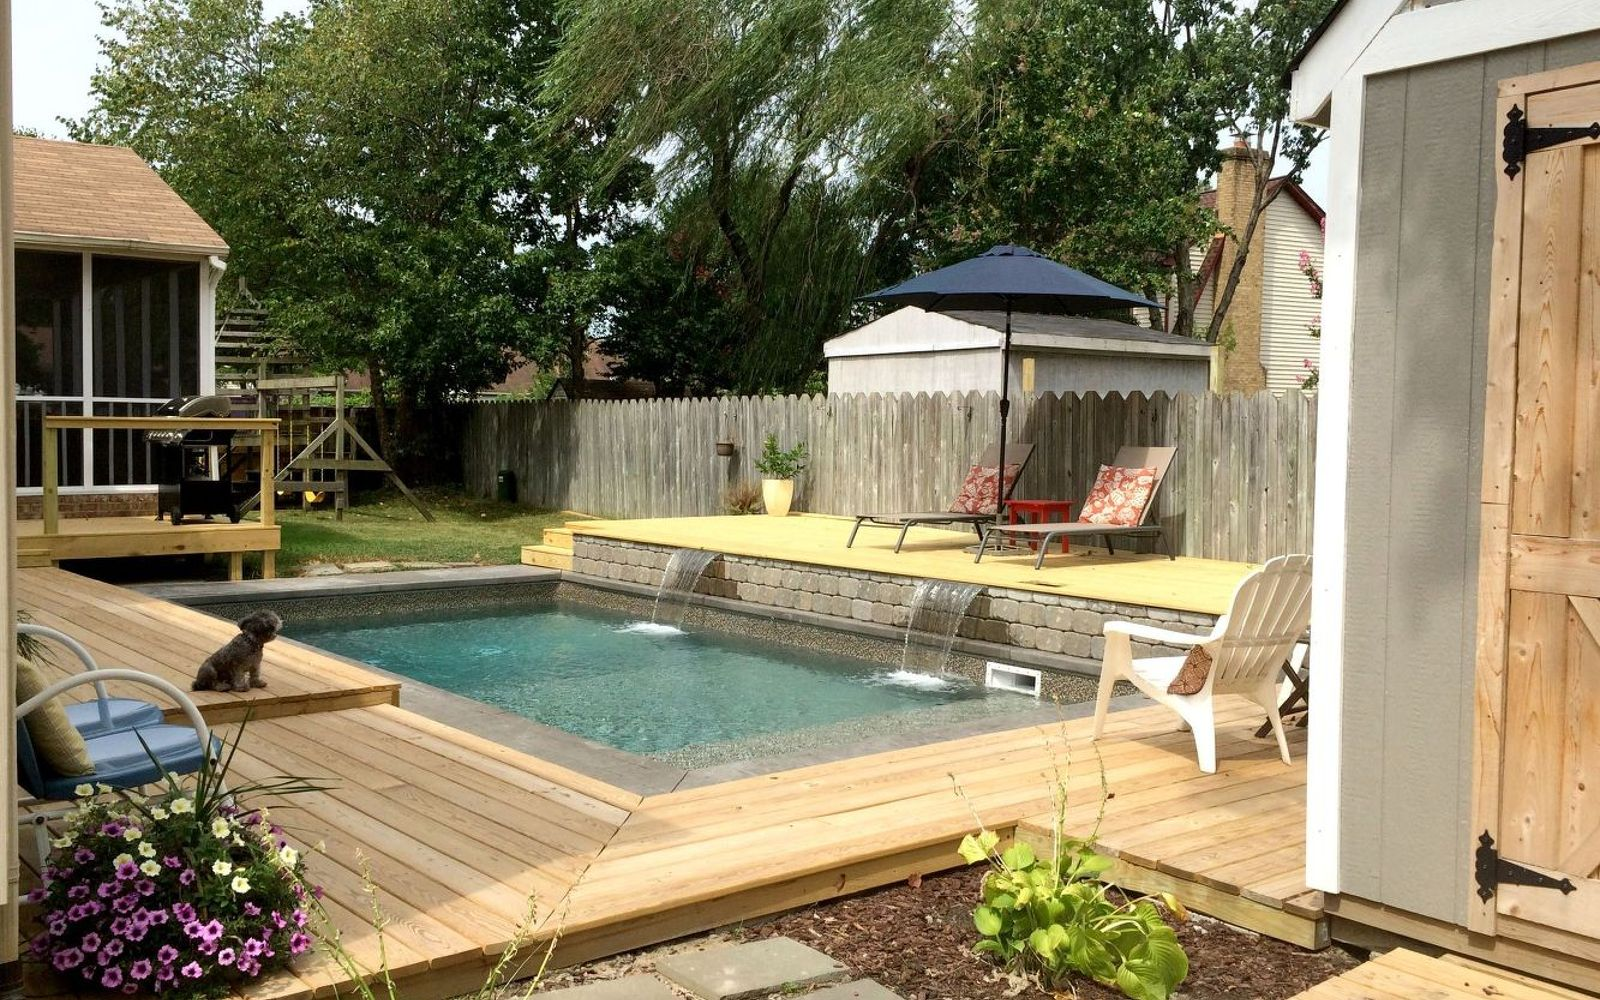 s wow 11 dreamy ideas for people who have backyard pools, outdoor living, pool designs, Add a raised sun bathing platform